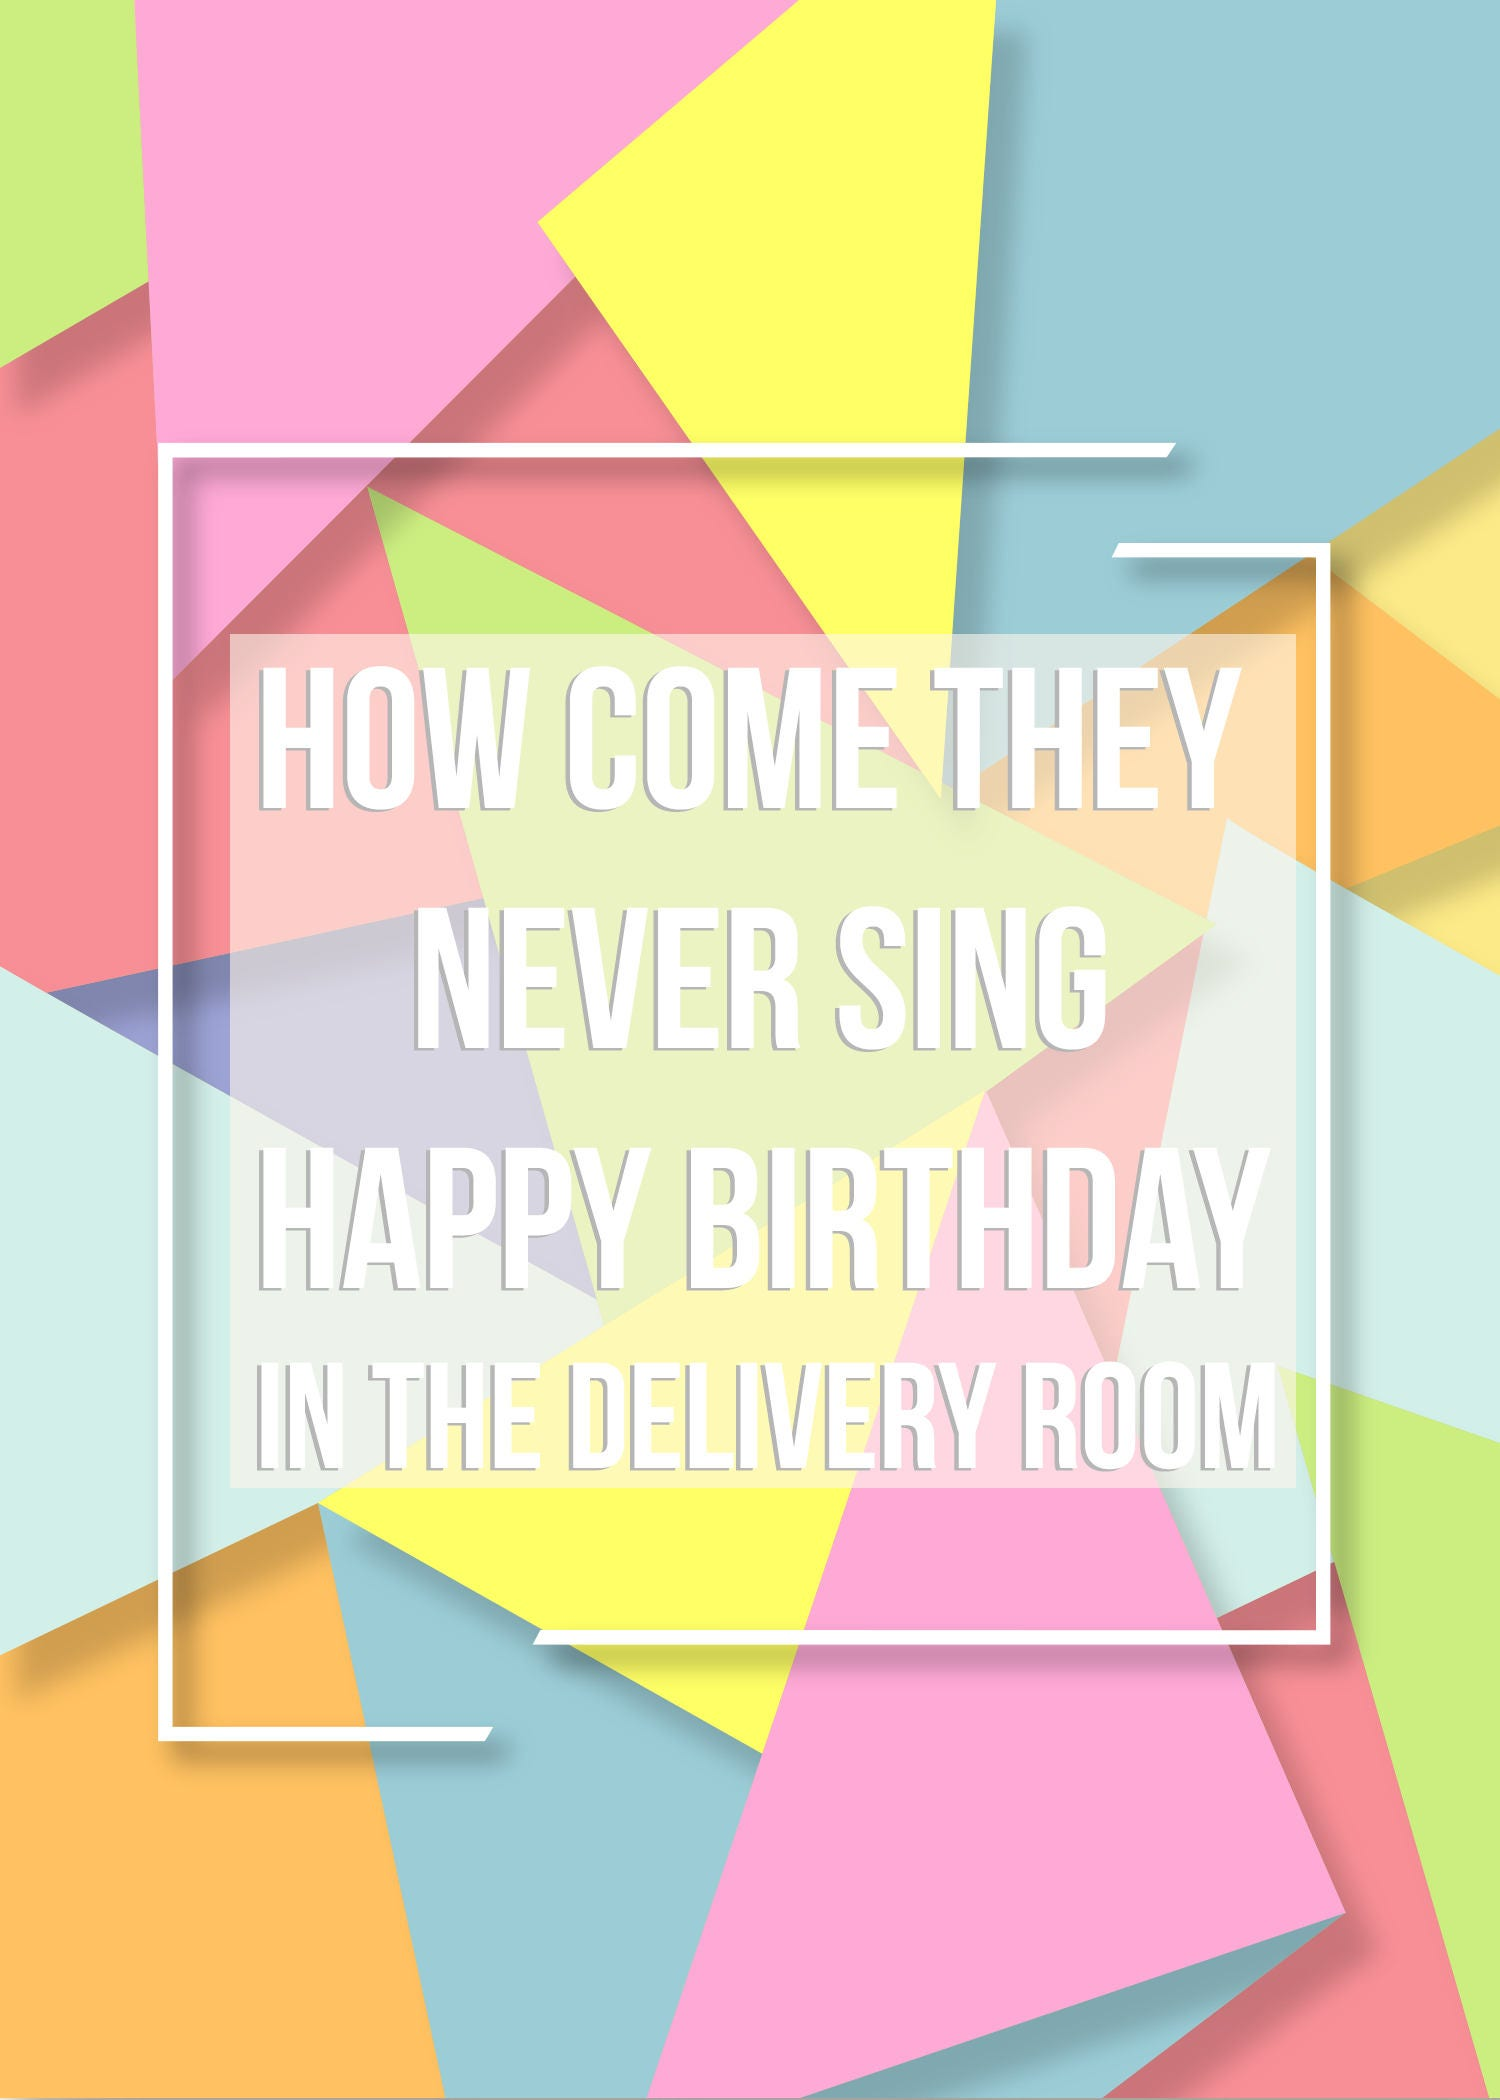 Funny Birthday Cards Online Adult For Her